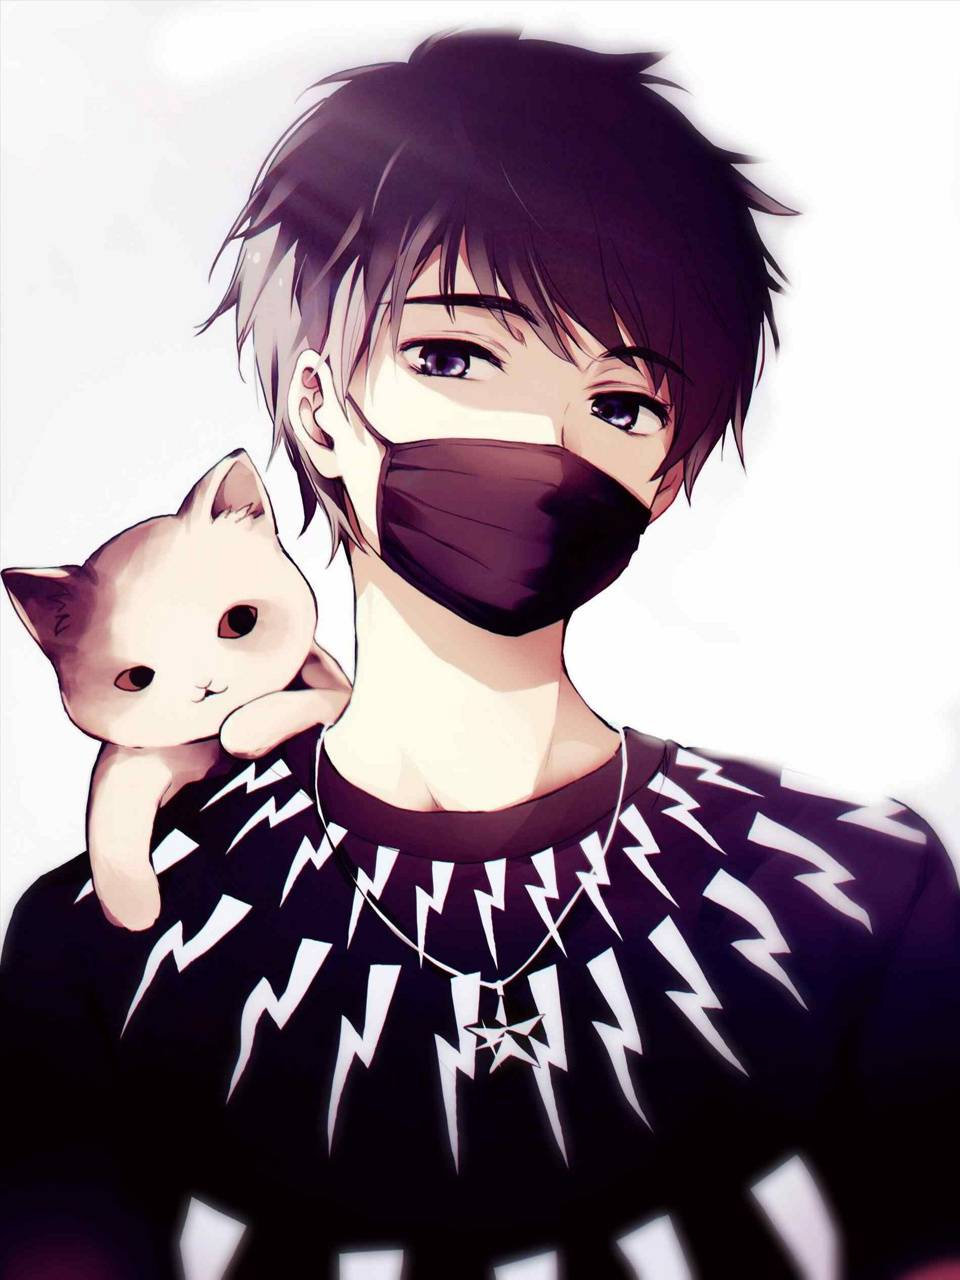 Anime Boy Wallpaper By Greatgamergabeyt Cc Free On Zedge In 2020 Anime Drawings Cute Boy Drawing Cute Anime Guys